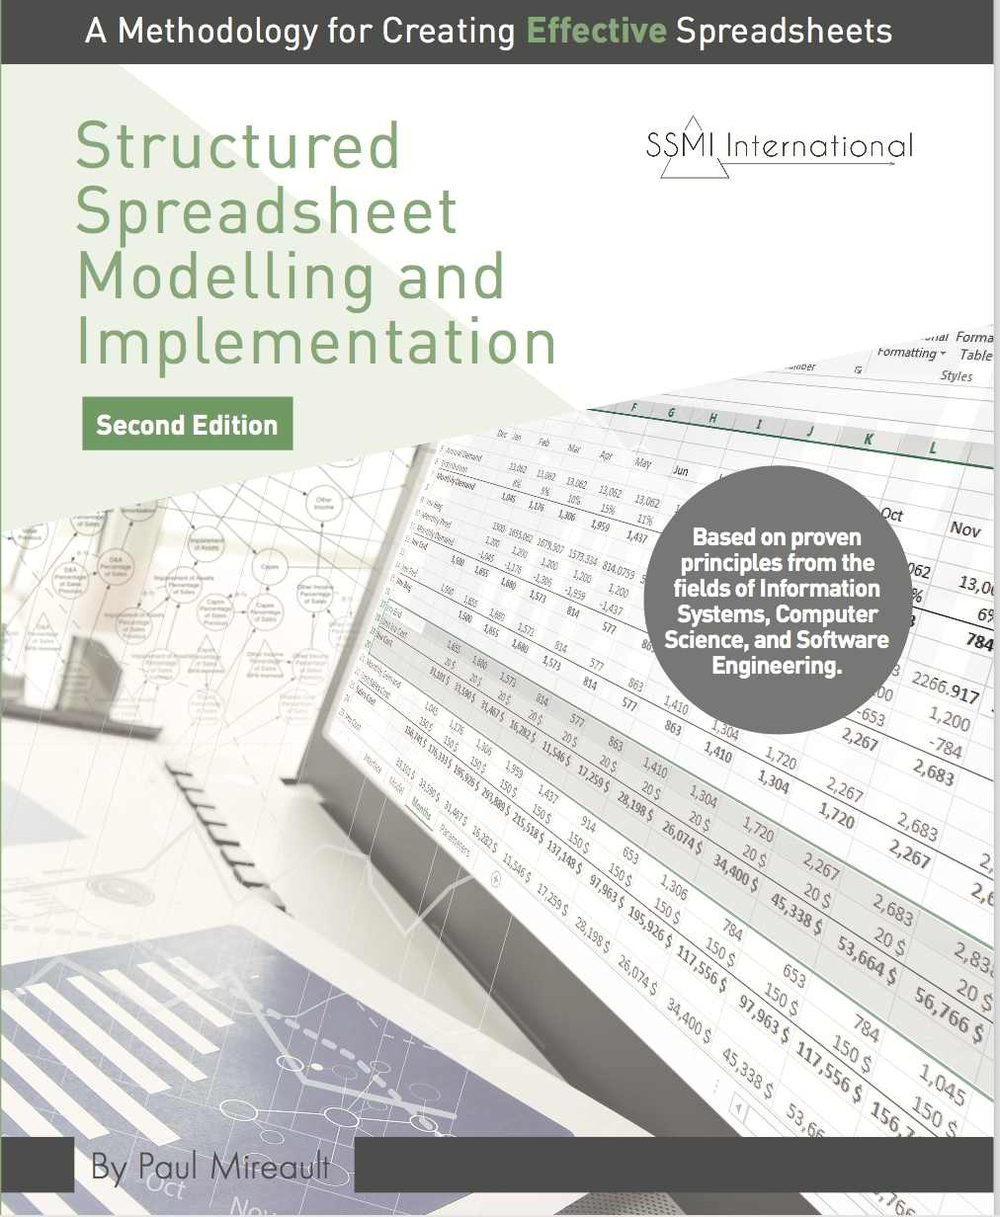 Structured Spreadsheet Modelling and Implementation: A Methodology for Creating Effective Spreadsheets, Second Edition -